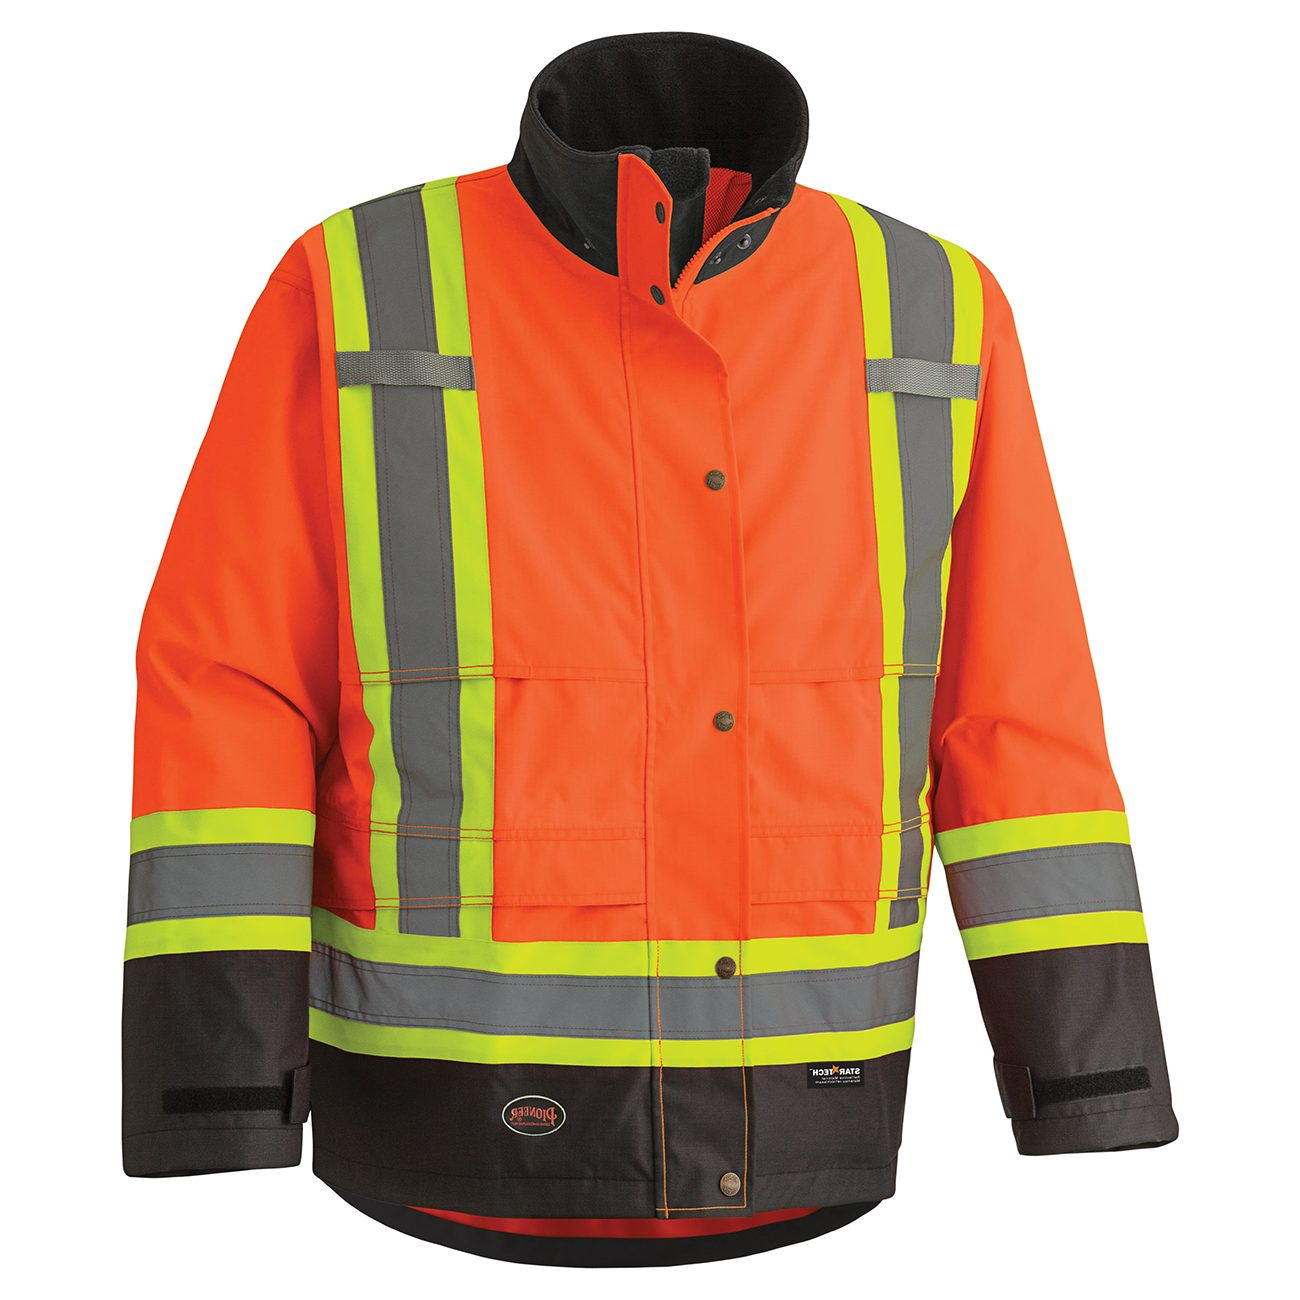 300d Hi Viz Ripstop Waterproof Safety Jacket Direct Workwear